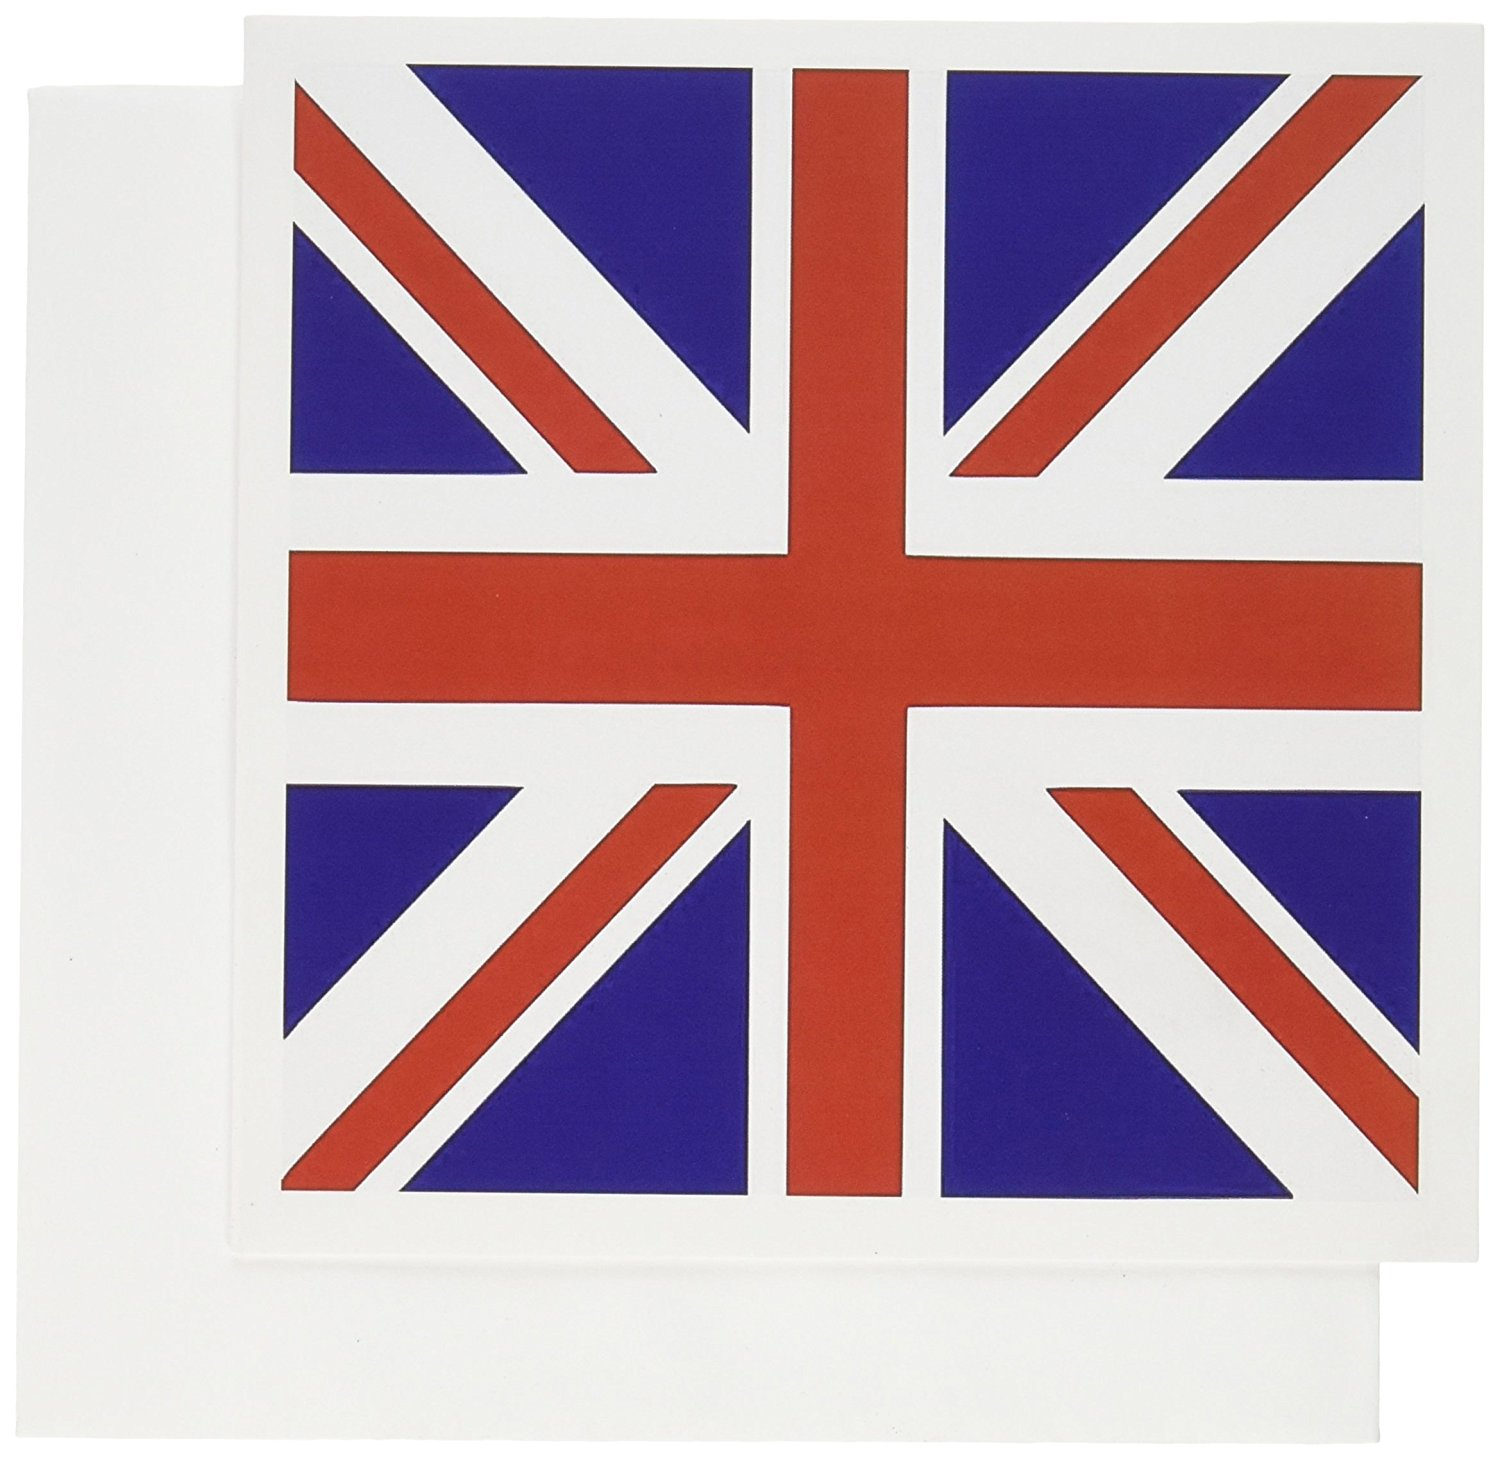 3dRose British Flag Red White Blue Union Jack Great Britain United Kingdom Uk England English Souvenir Gb Greeting Cards, 6 x 6 Inches, Set of 6 (gc_159852_1)